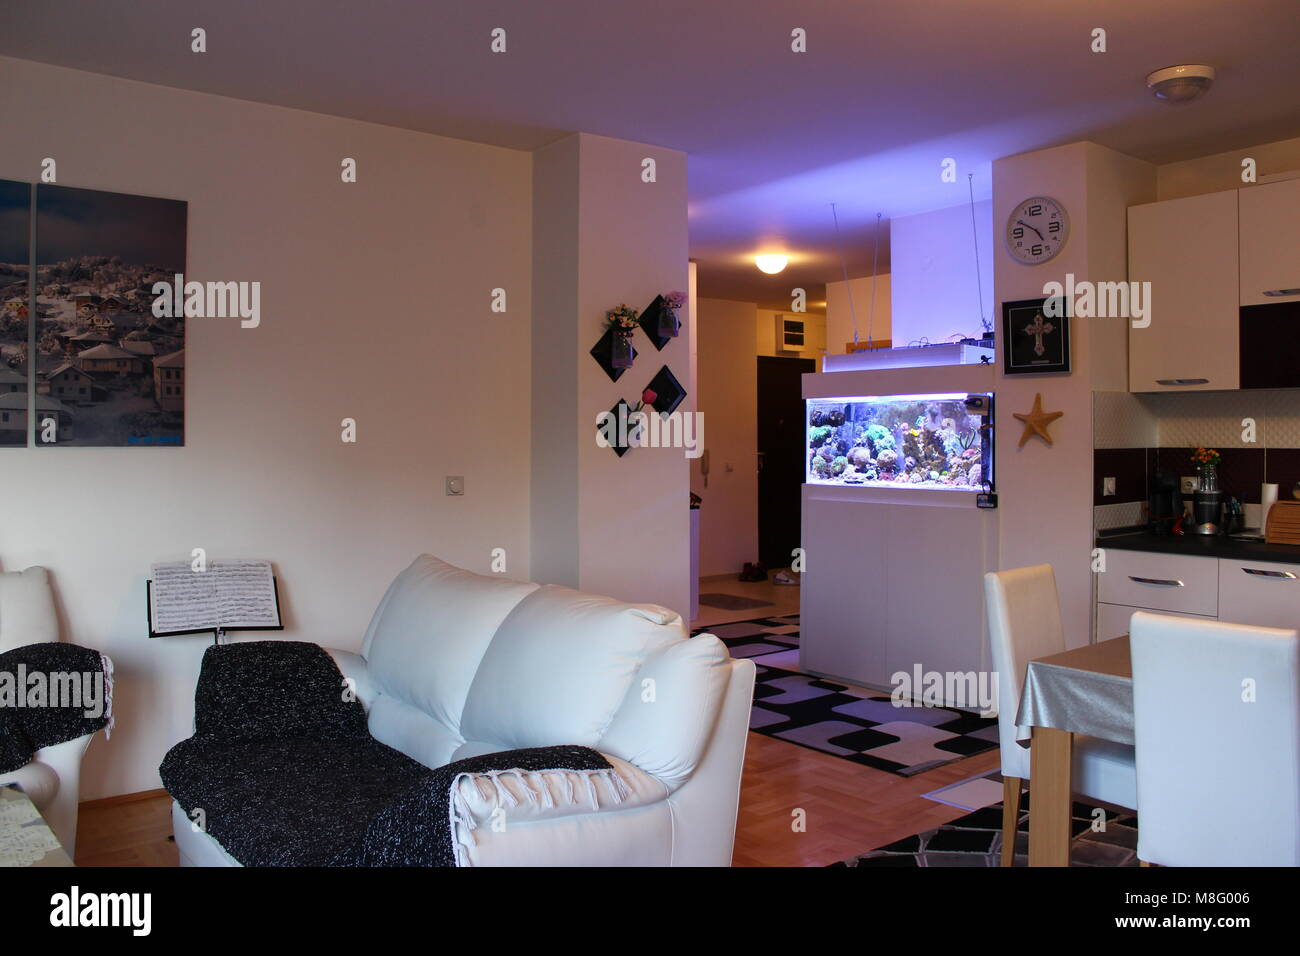 Coral reef aquarium in home interior like one of the most beautiful addition - Stock Image